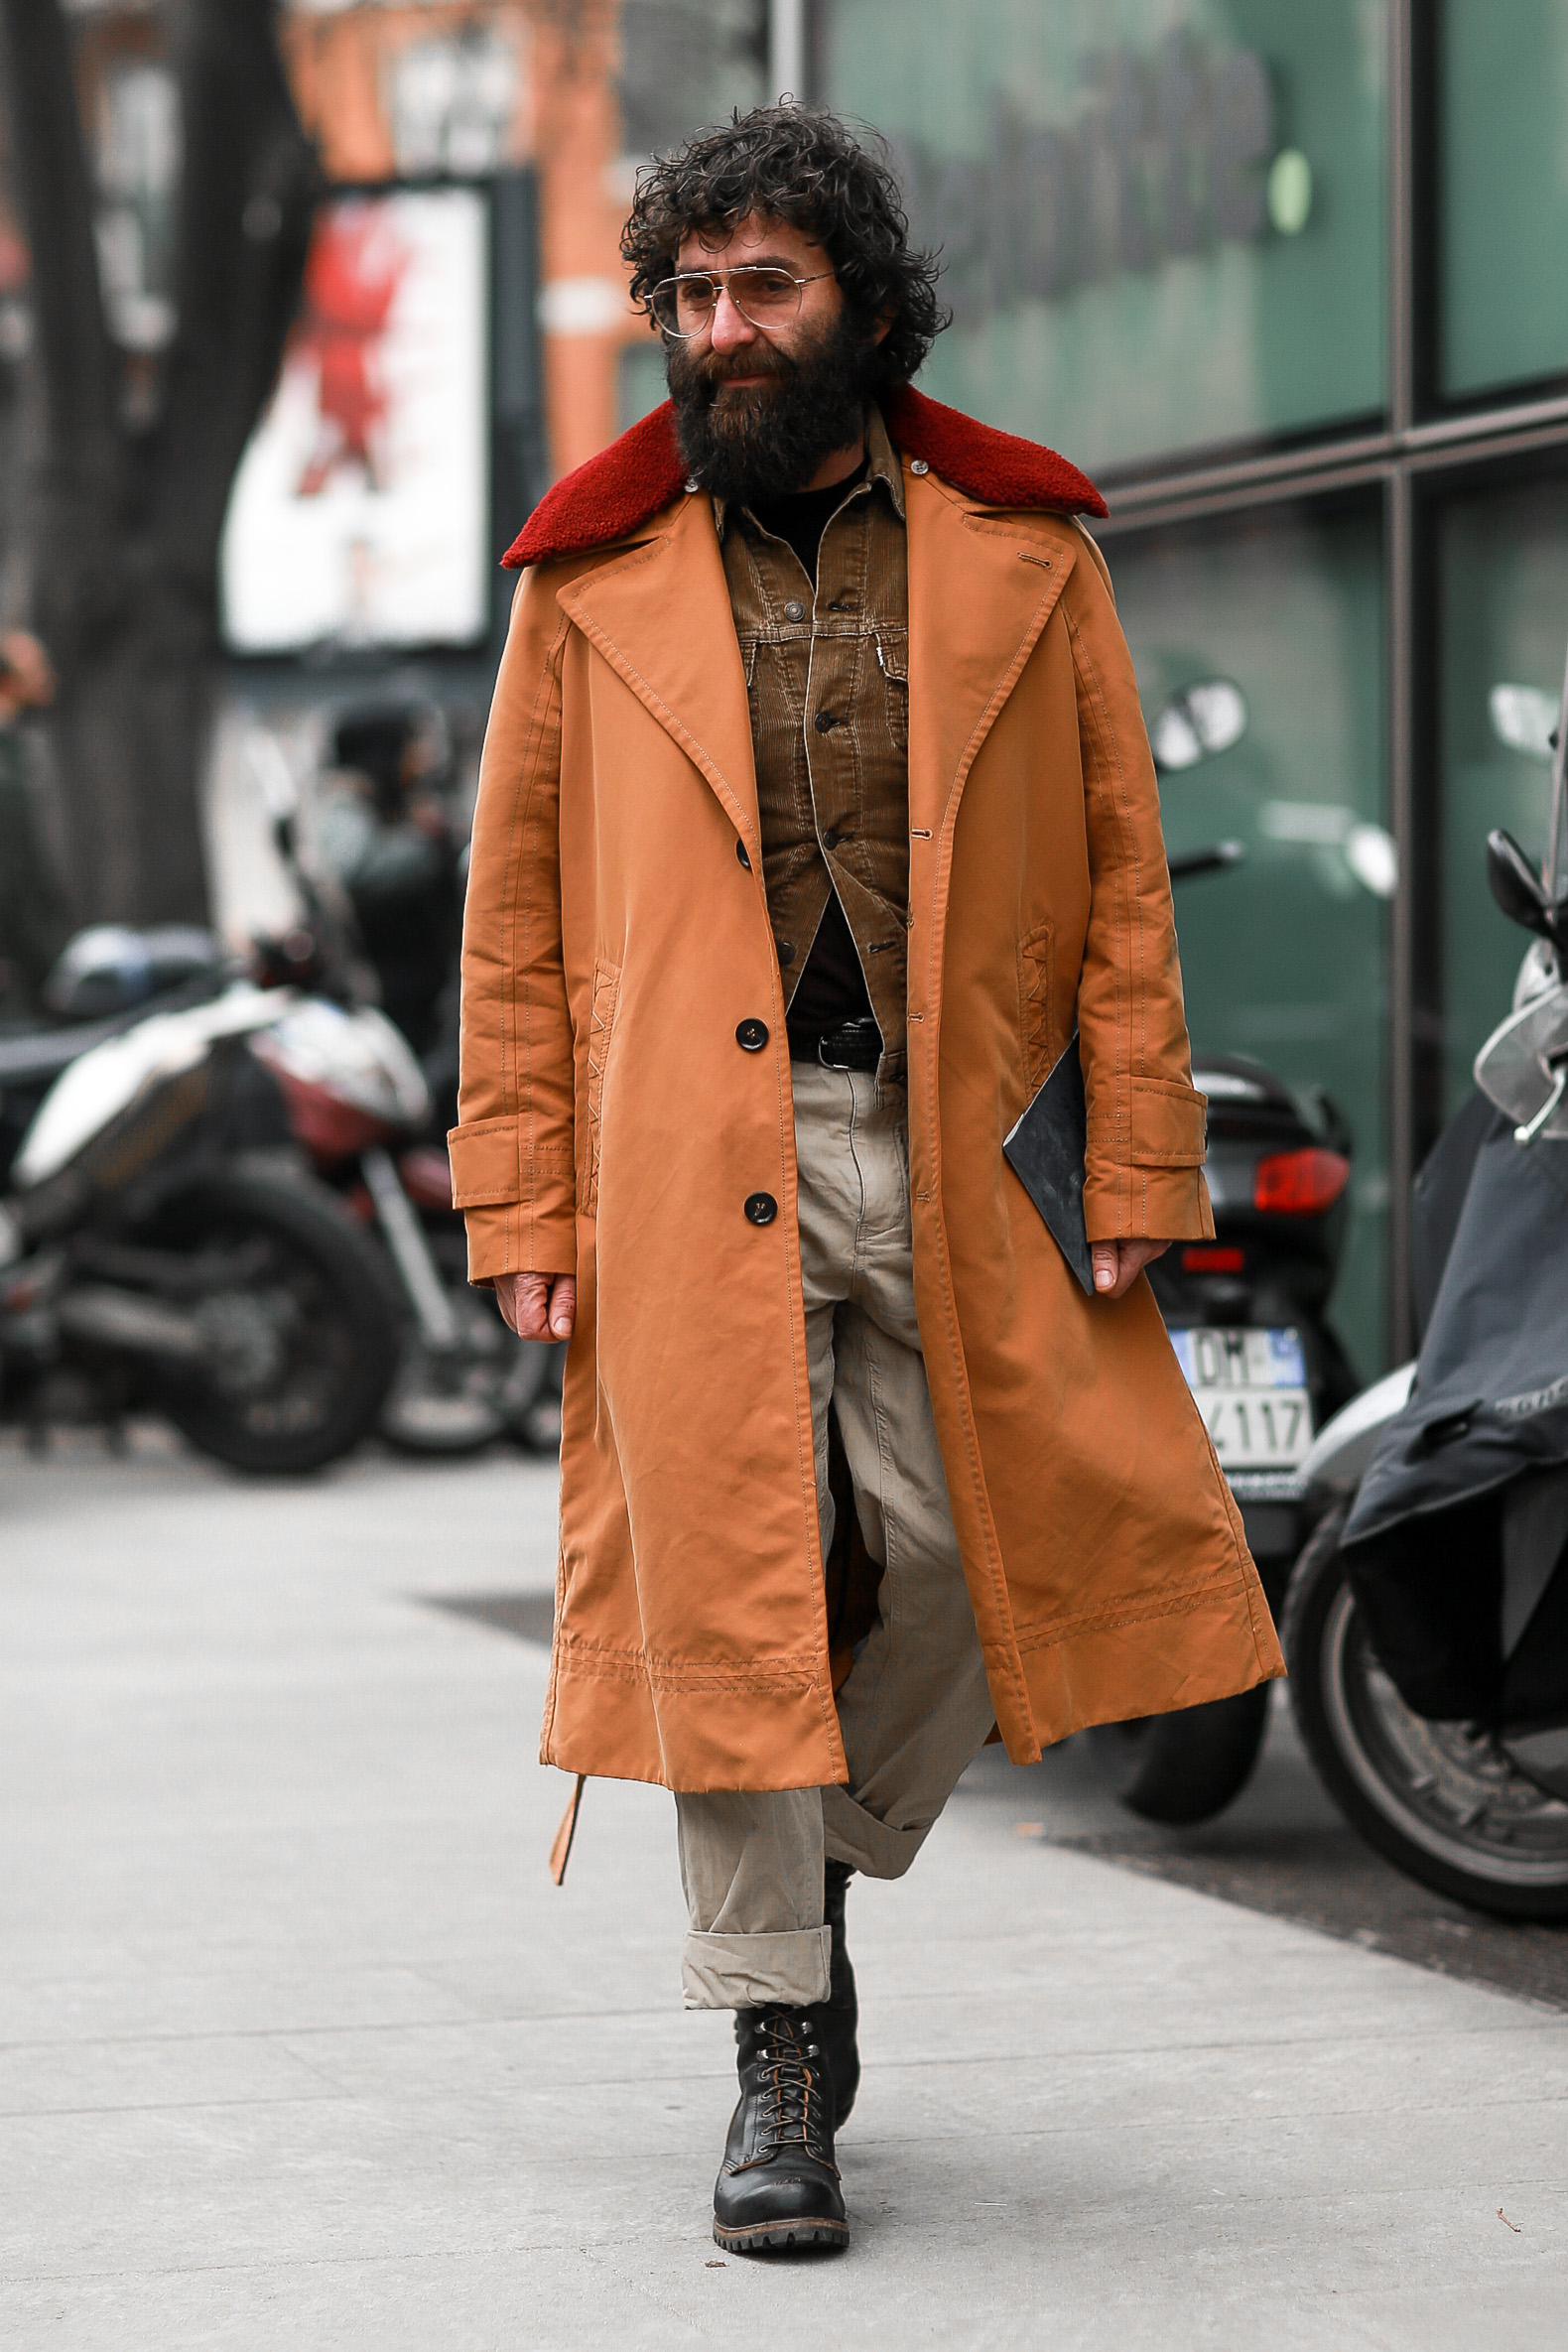 Street Style from Milan Fashion Week AW18: Yilmaz Aktepe